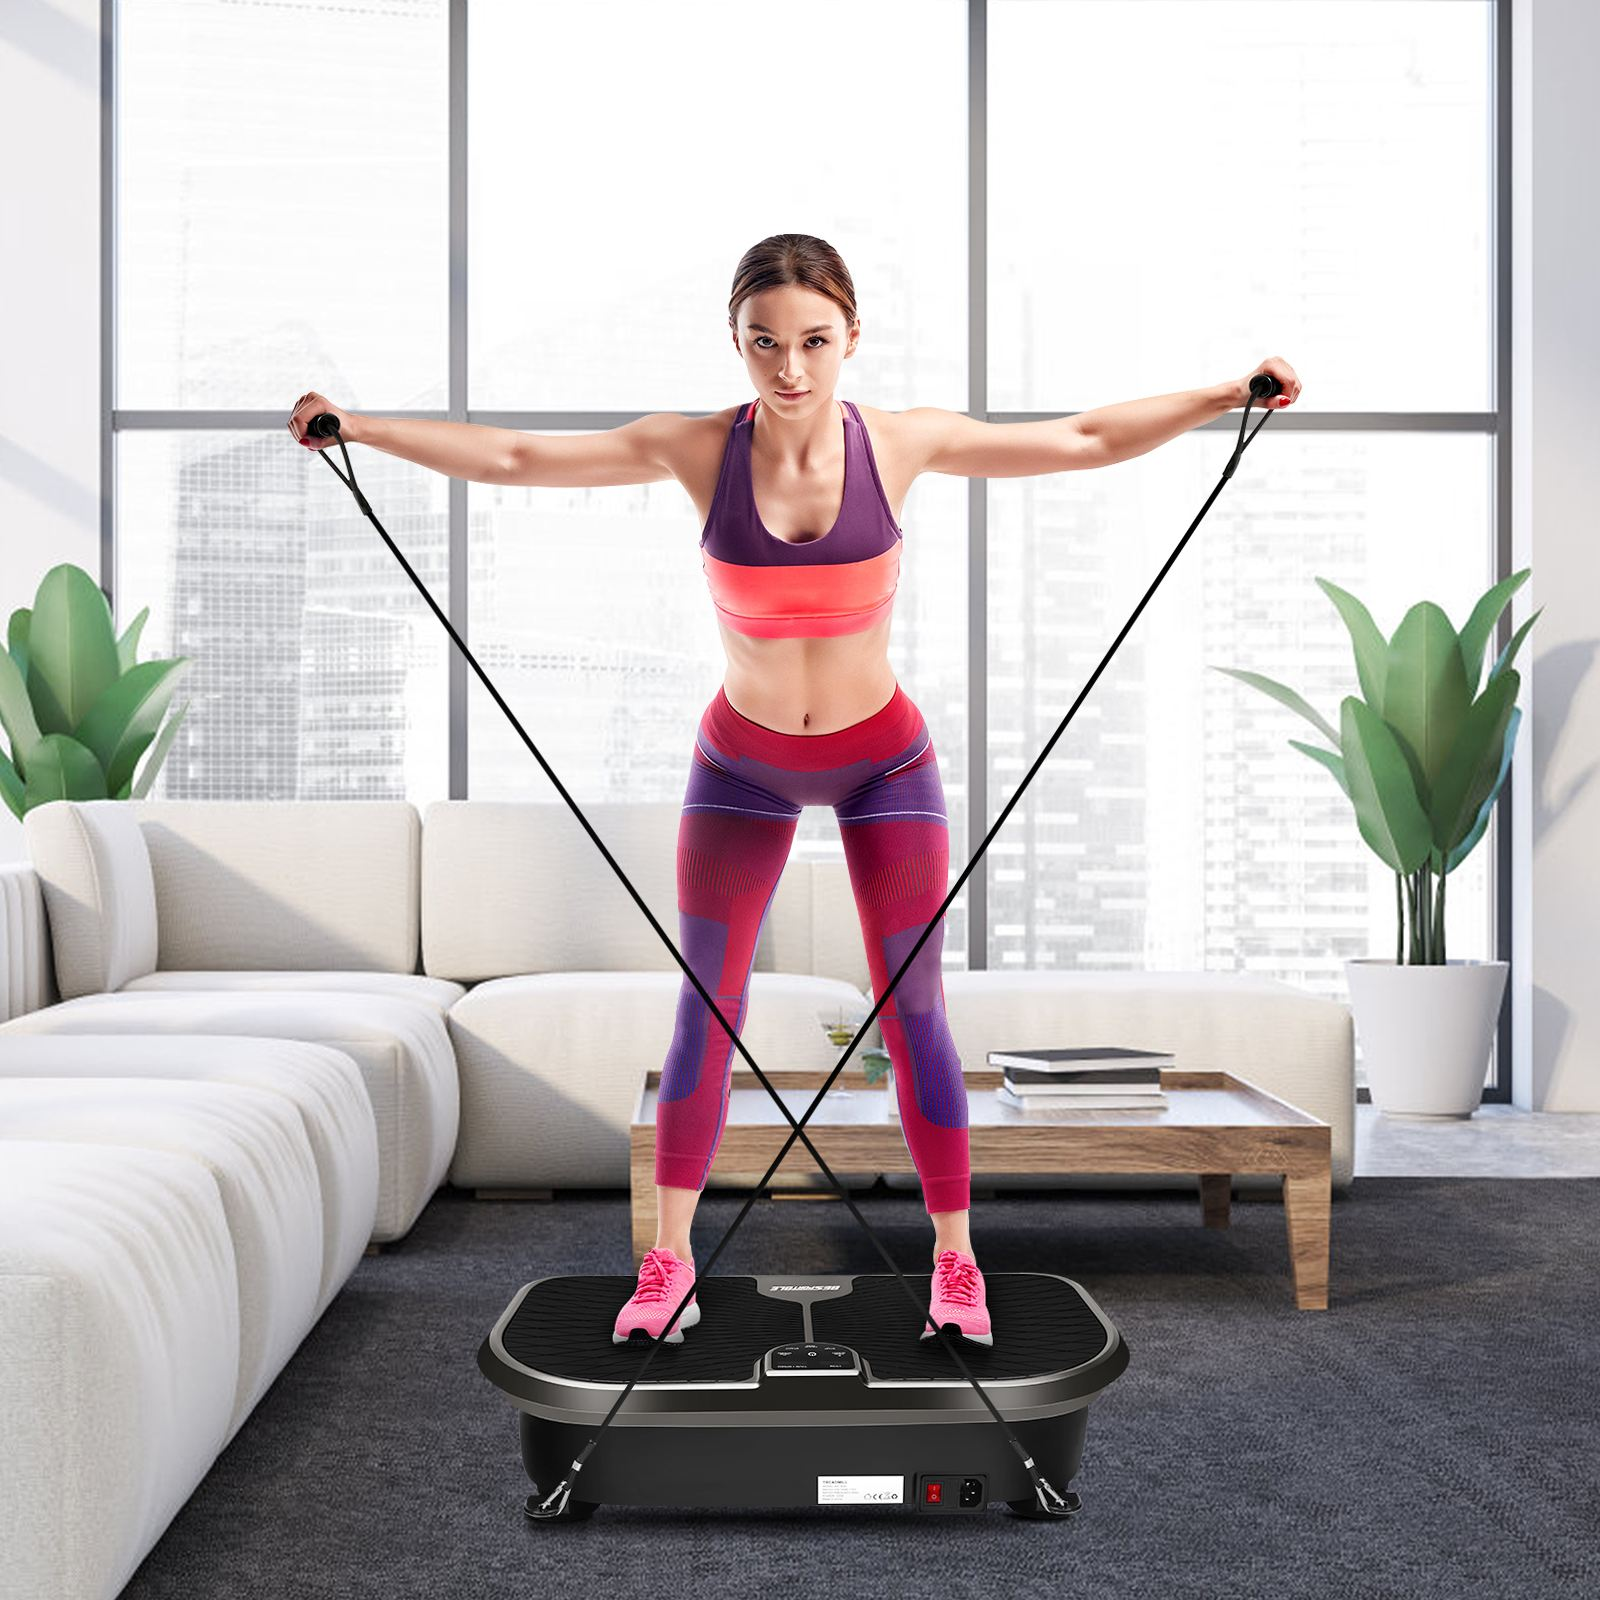 Permalink to JF-B36Vibration Plate Exercise Machine Body Workout Platform Fitness Machine Weight Loss Training Equipment With Loop Bands